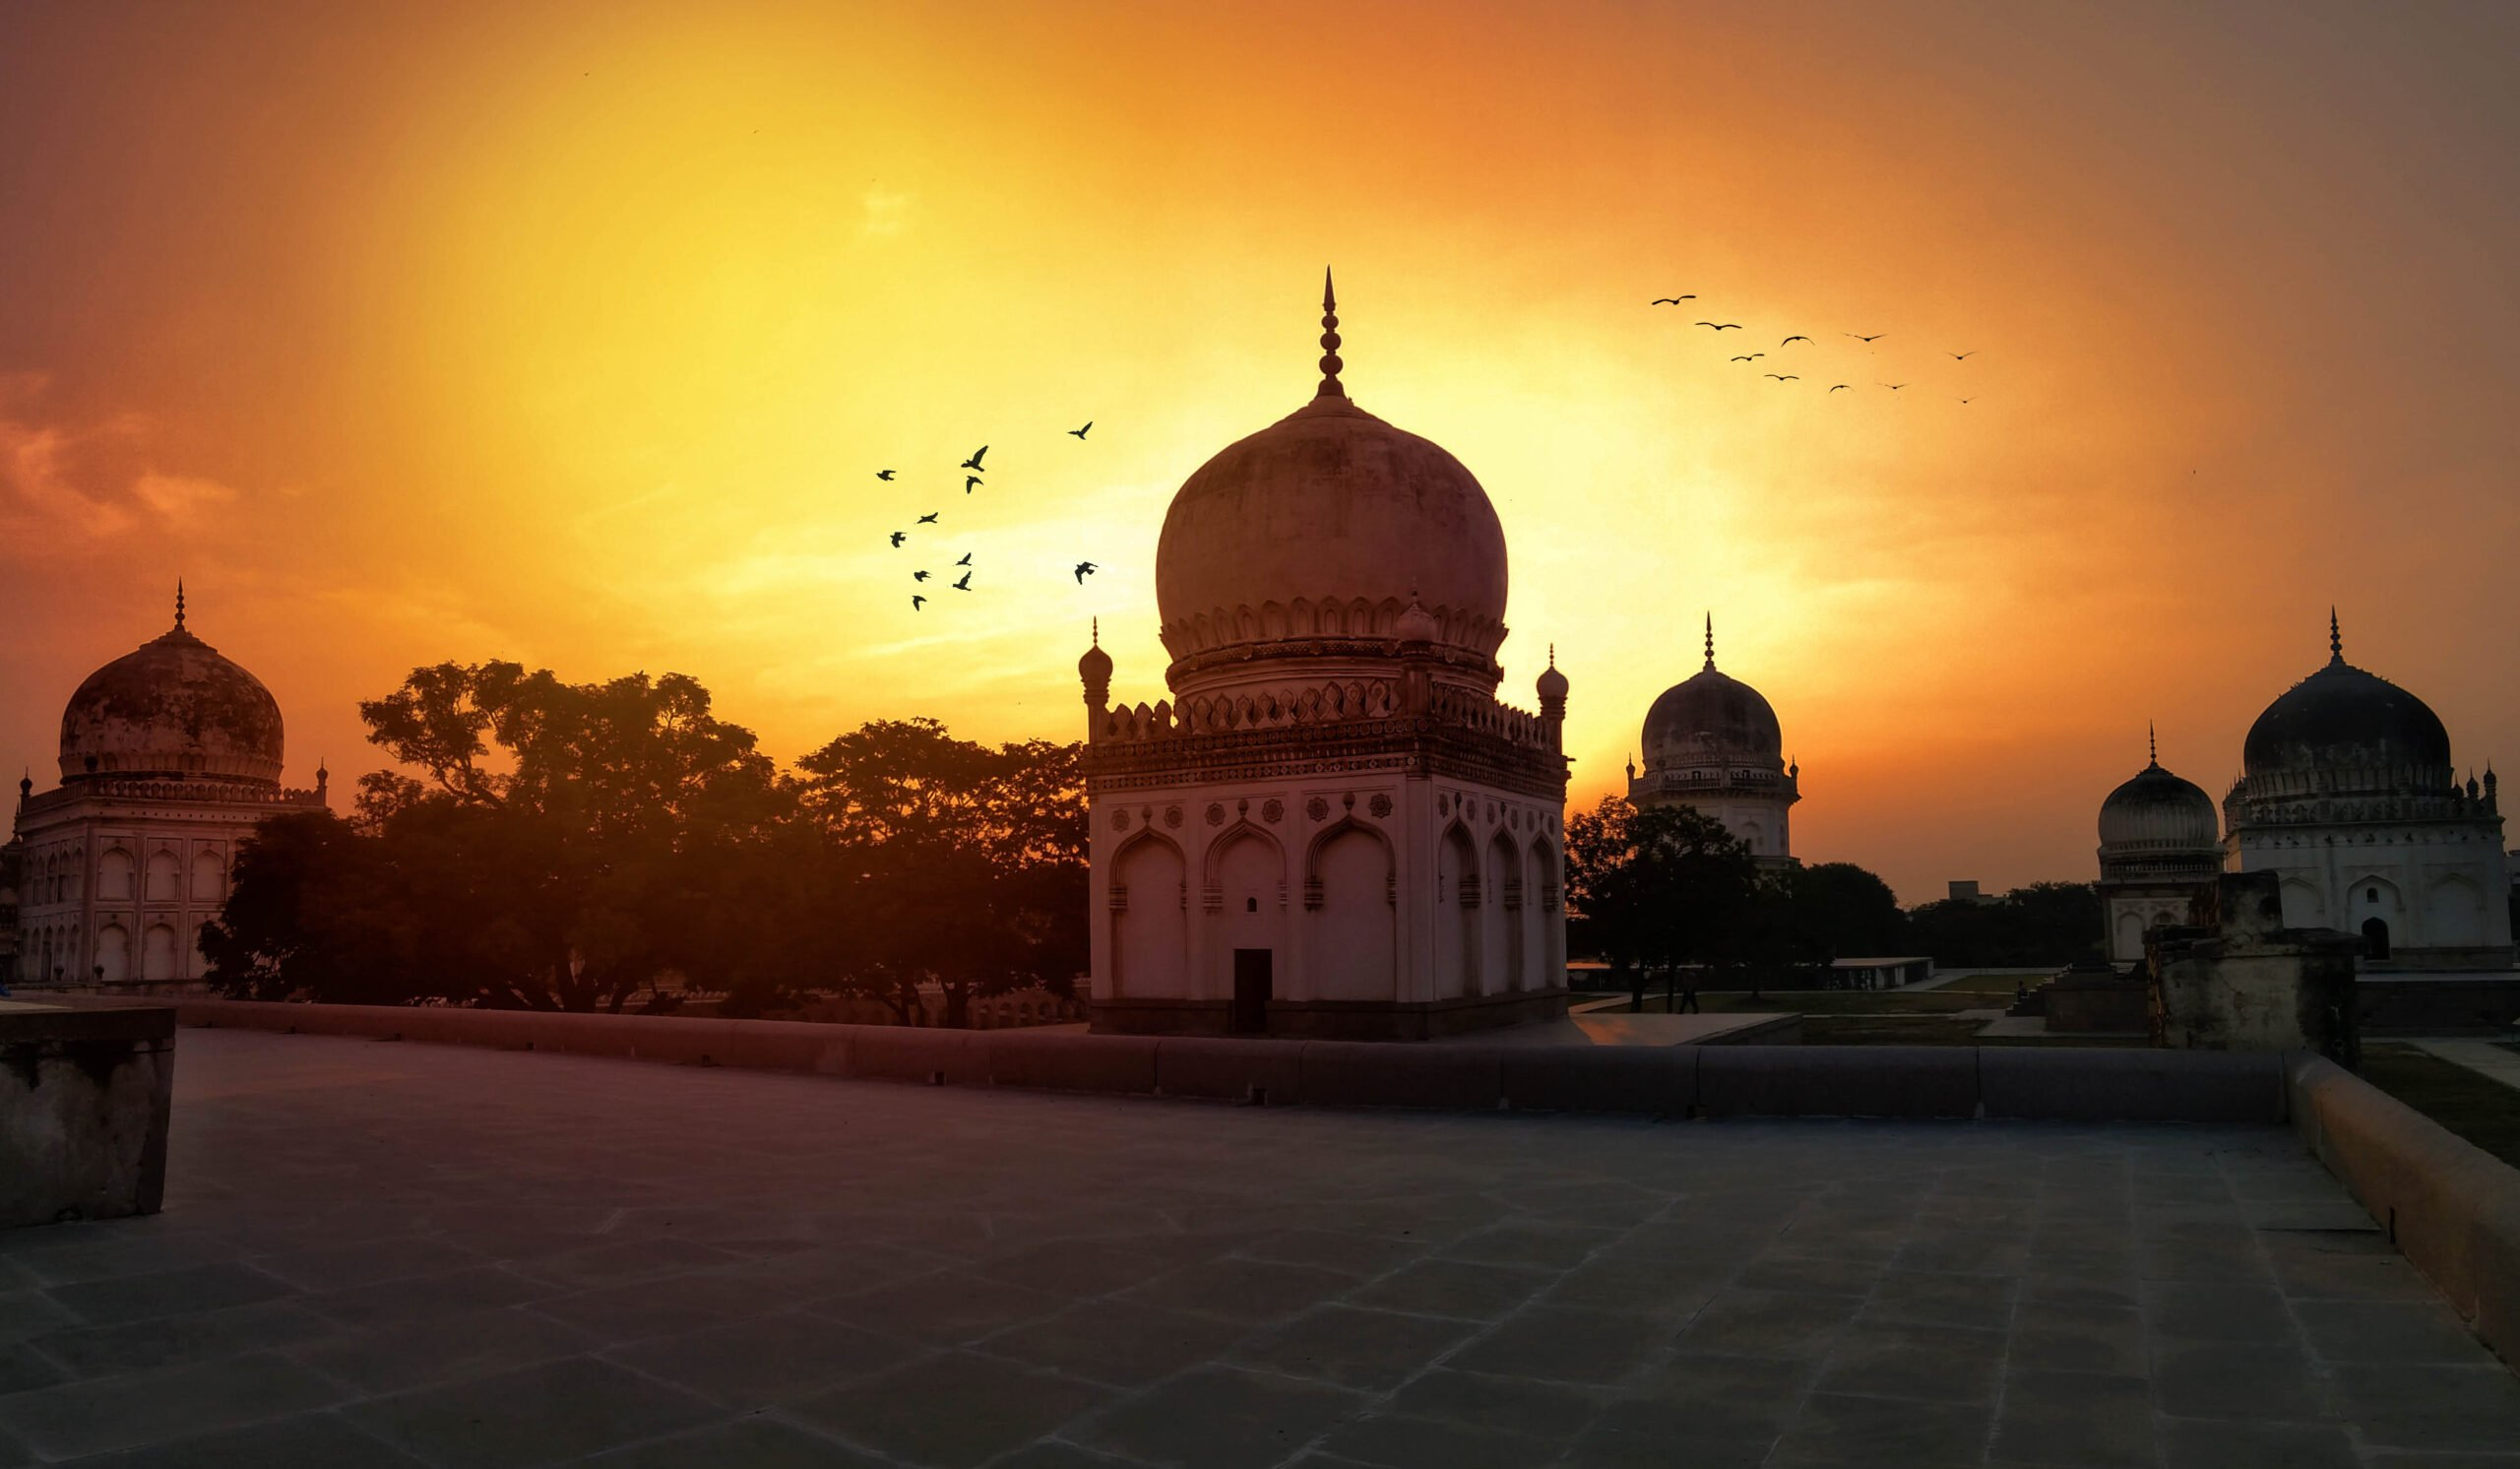 Marvel At The Exquisite Architecture Of Qutub Shahi Tombs